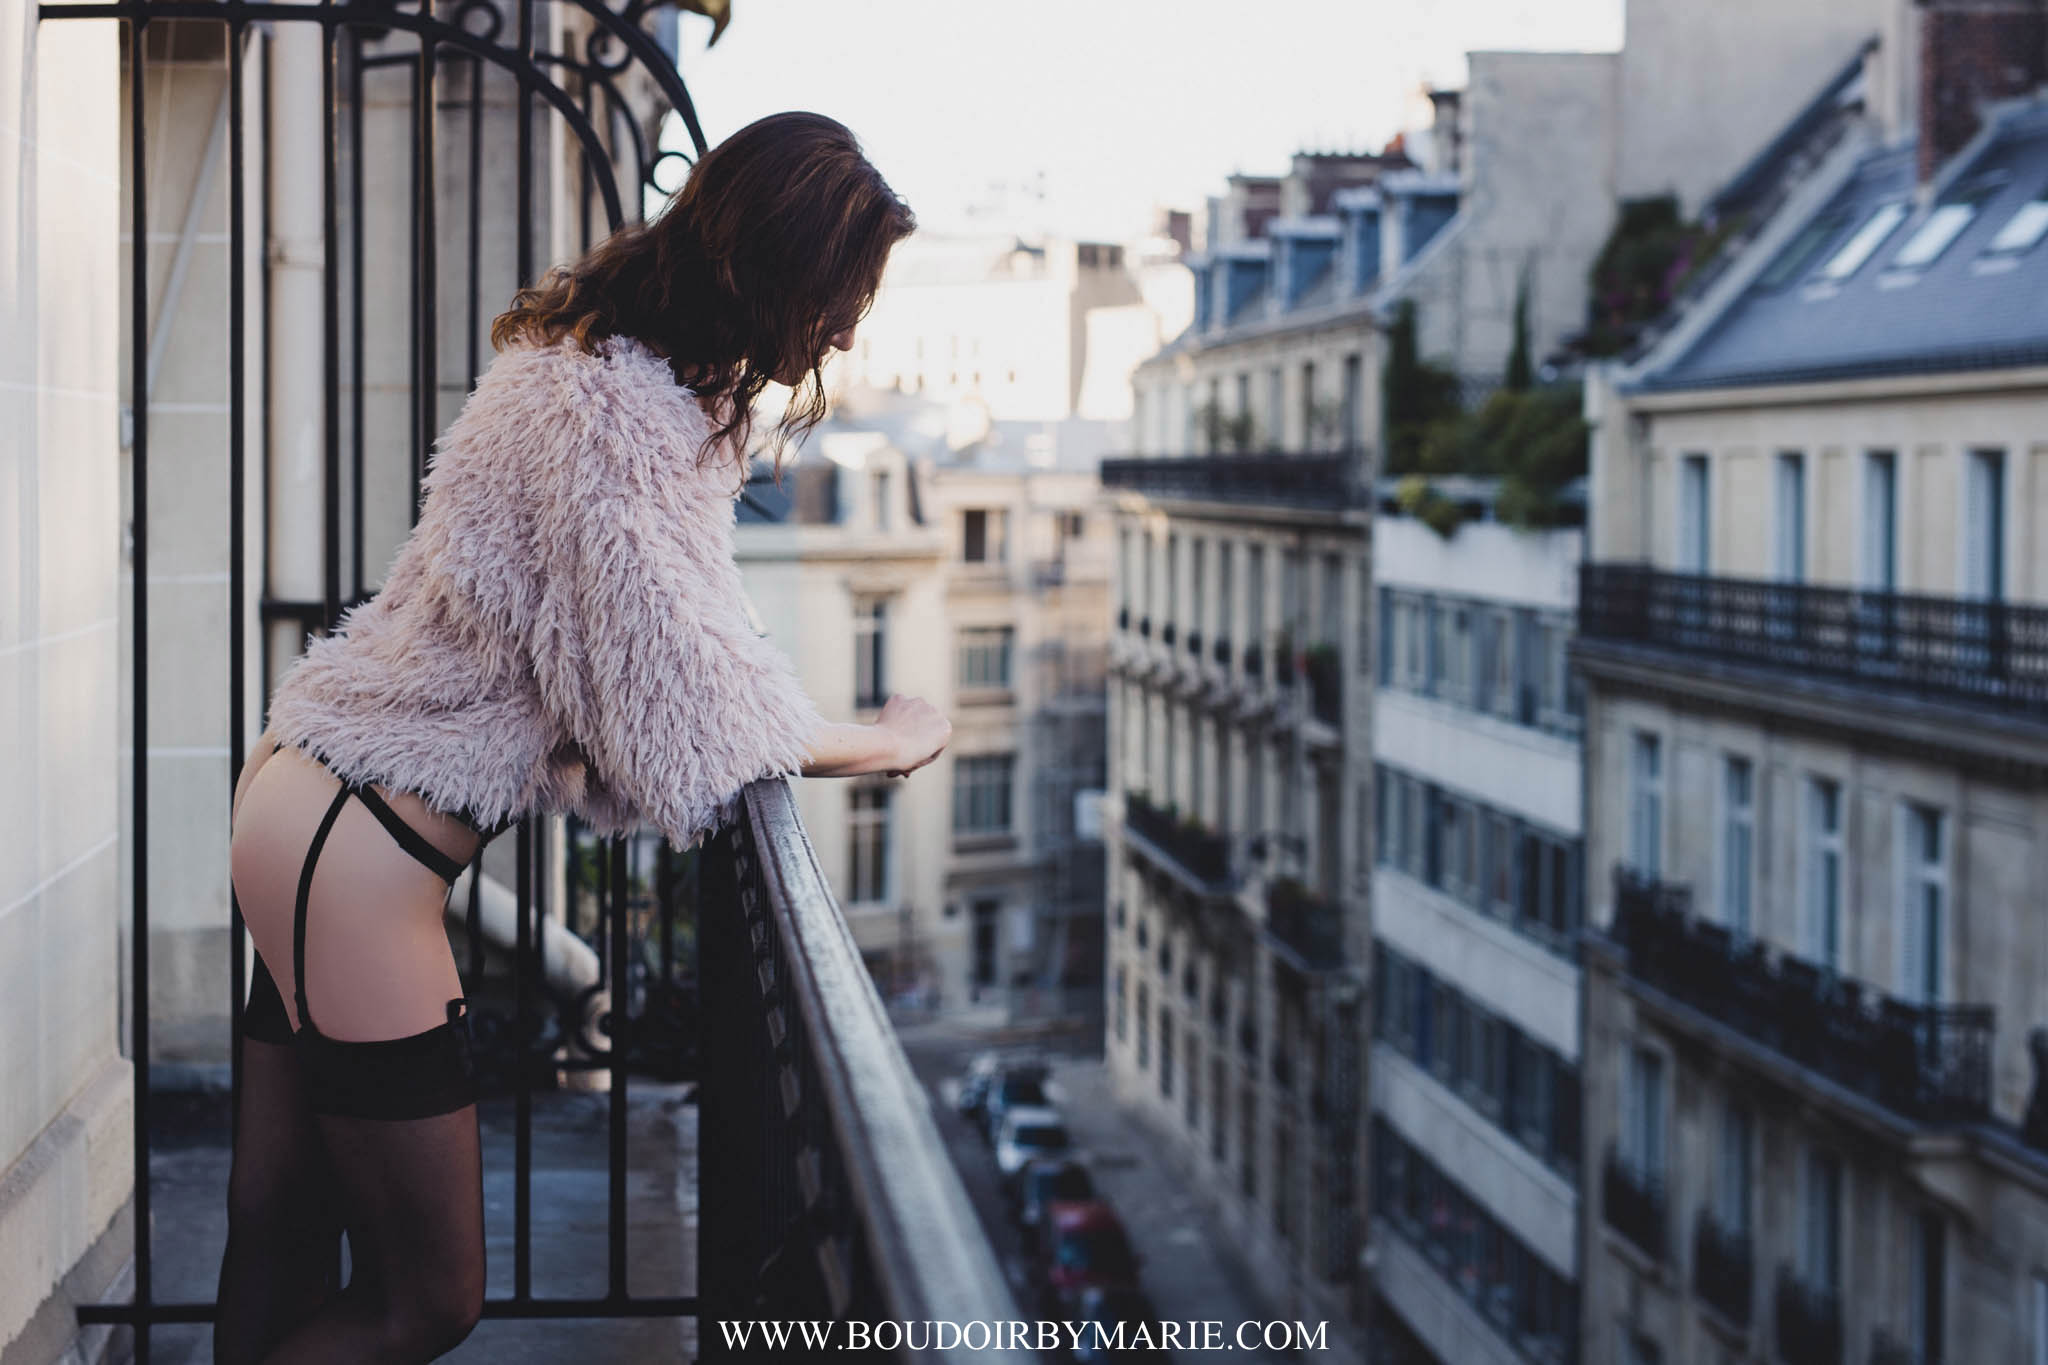 International Boudoir Photographer Boudoir by Marie traveled to Paris, France for this dark and moody boudoir photography session.